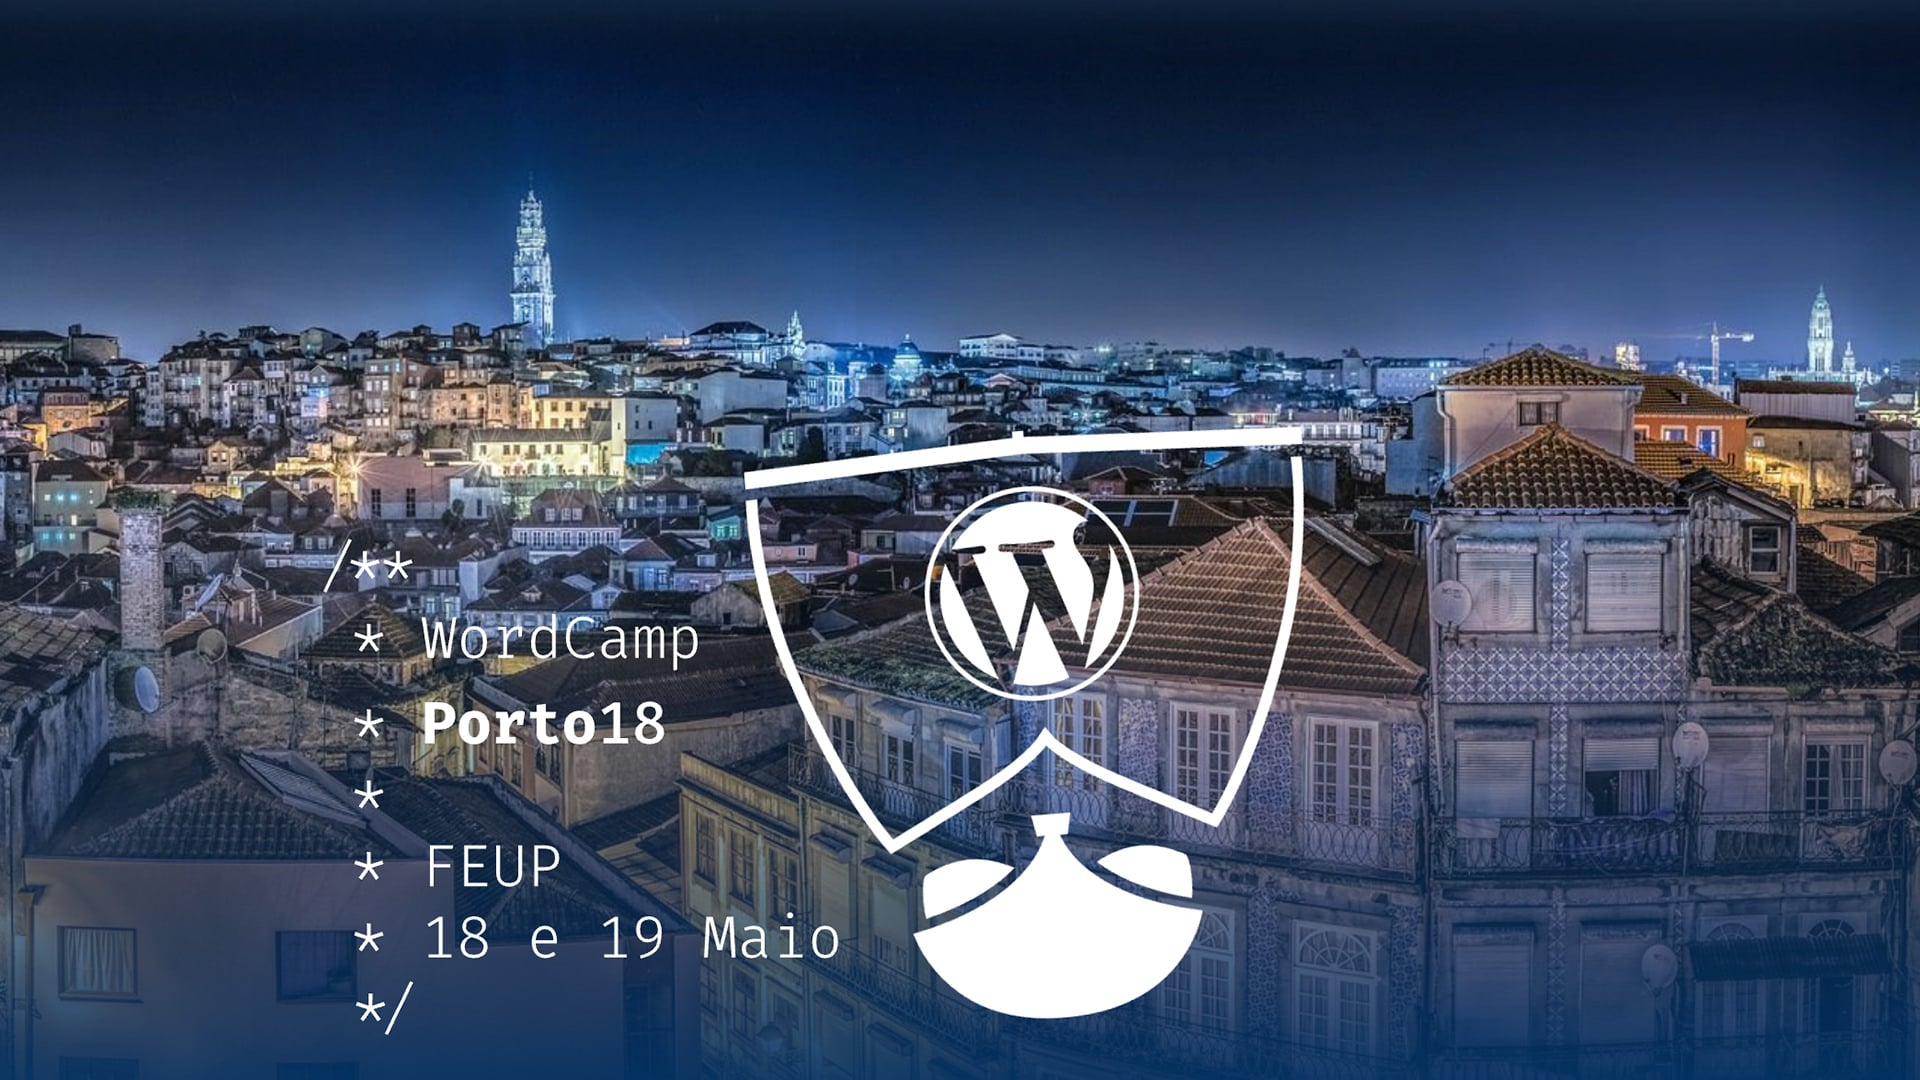 Evento Wordpress